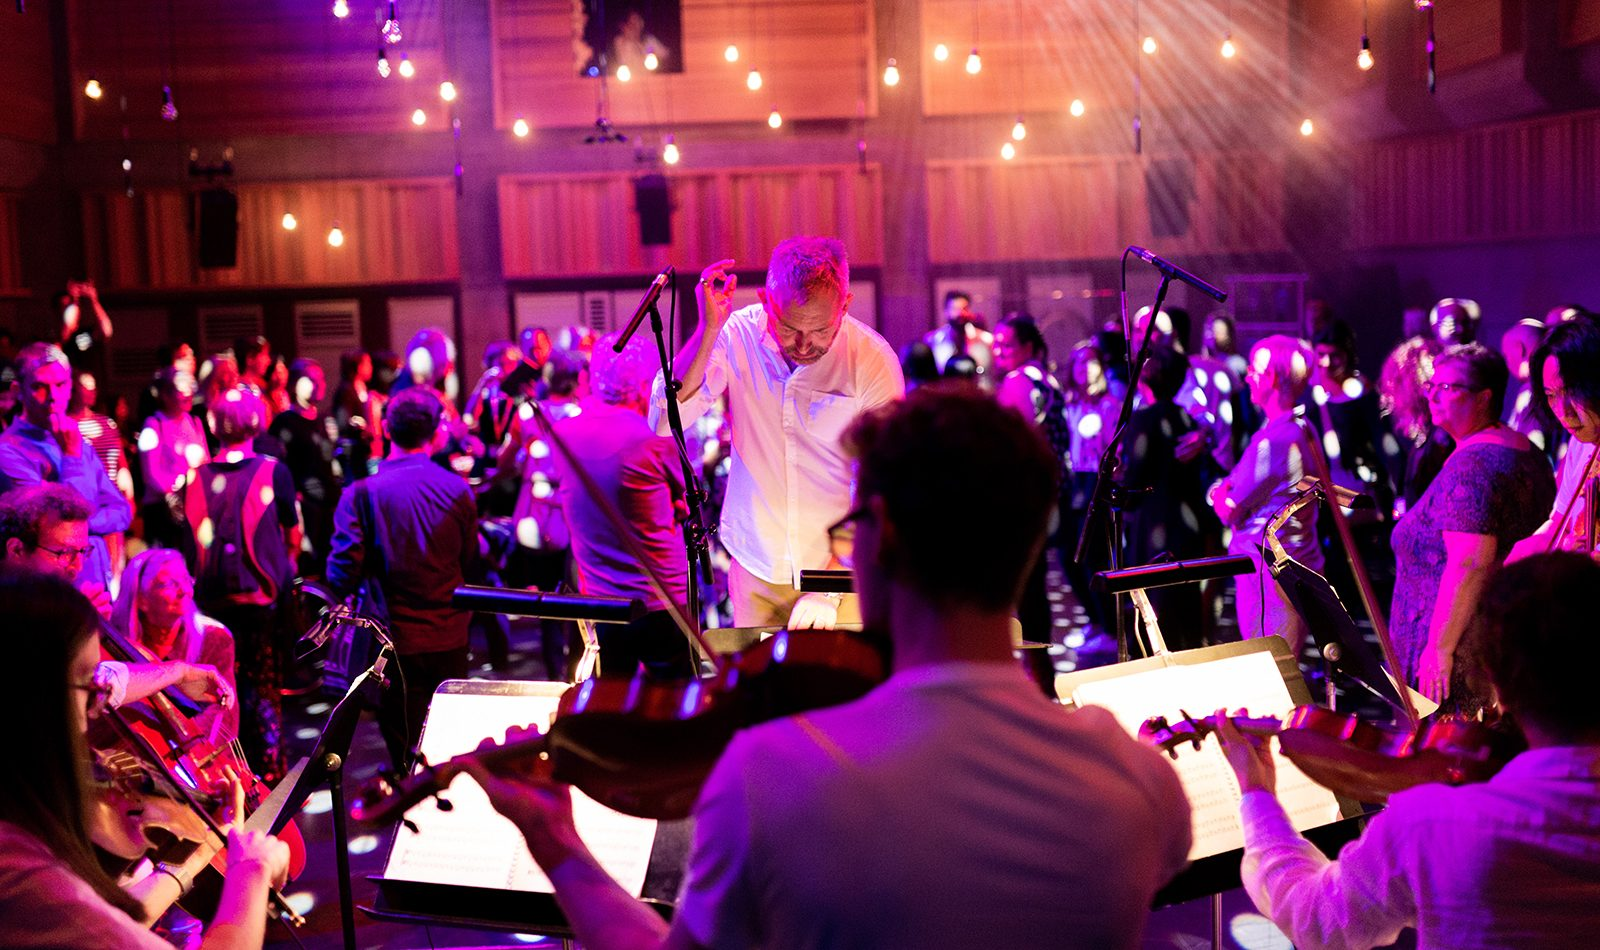 Image taken from behind 5 string musicians dressed in white, they play, conducted by Charles Hazlewood in white, head down, hand raised. In the Background an audience on foot are illuminated by twinkling lights and hues of pink and purple.